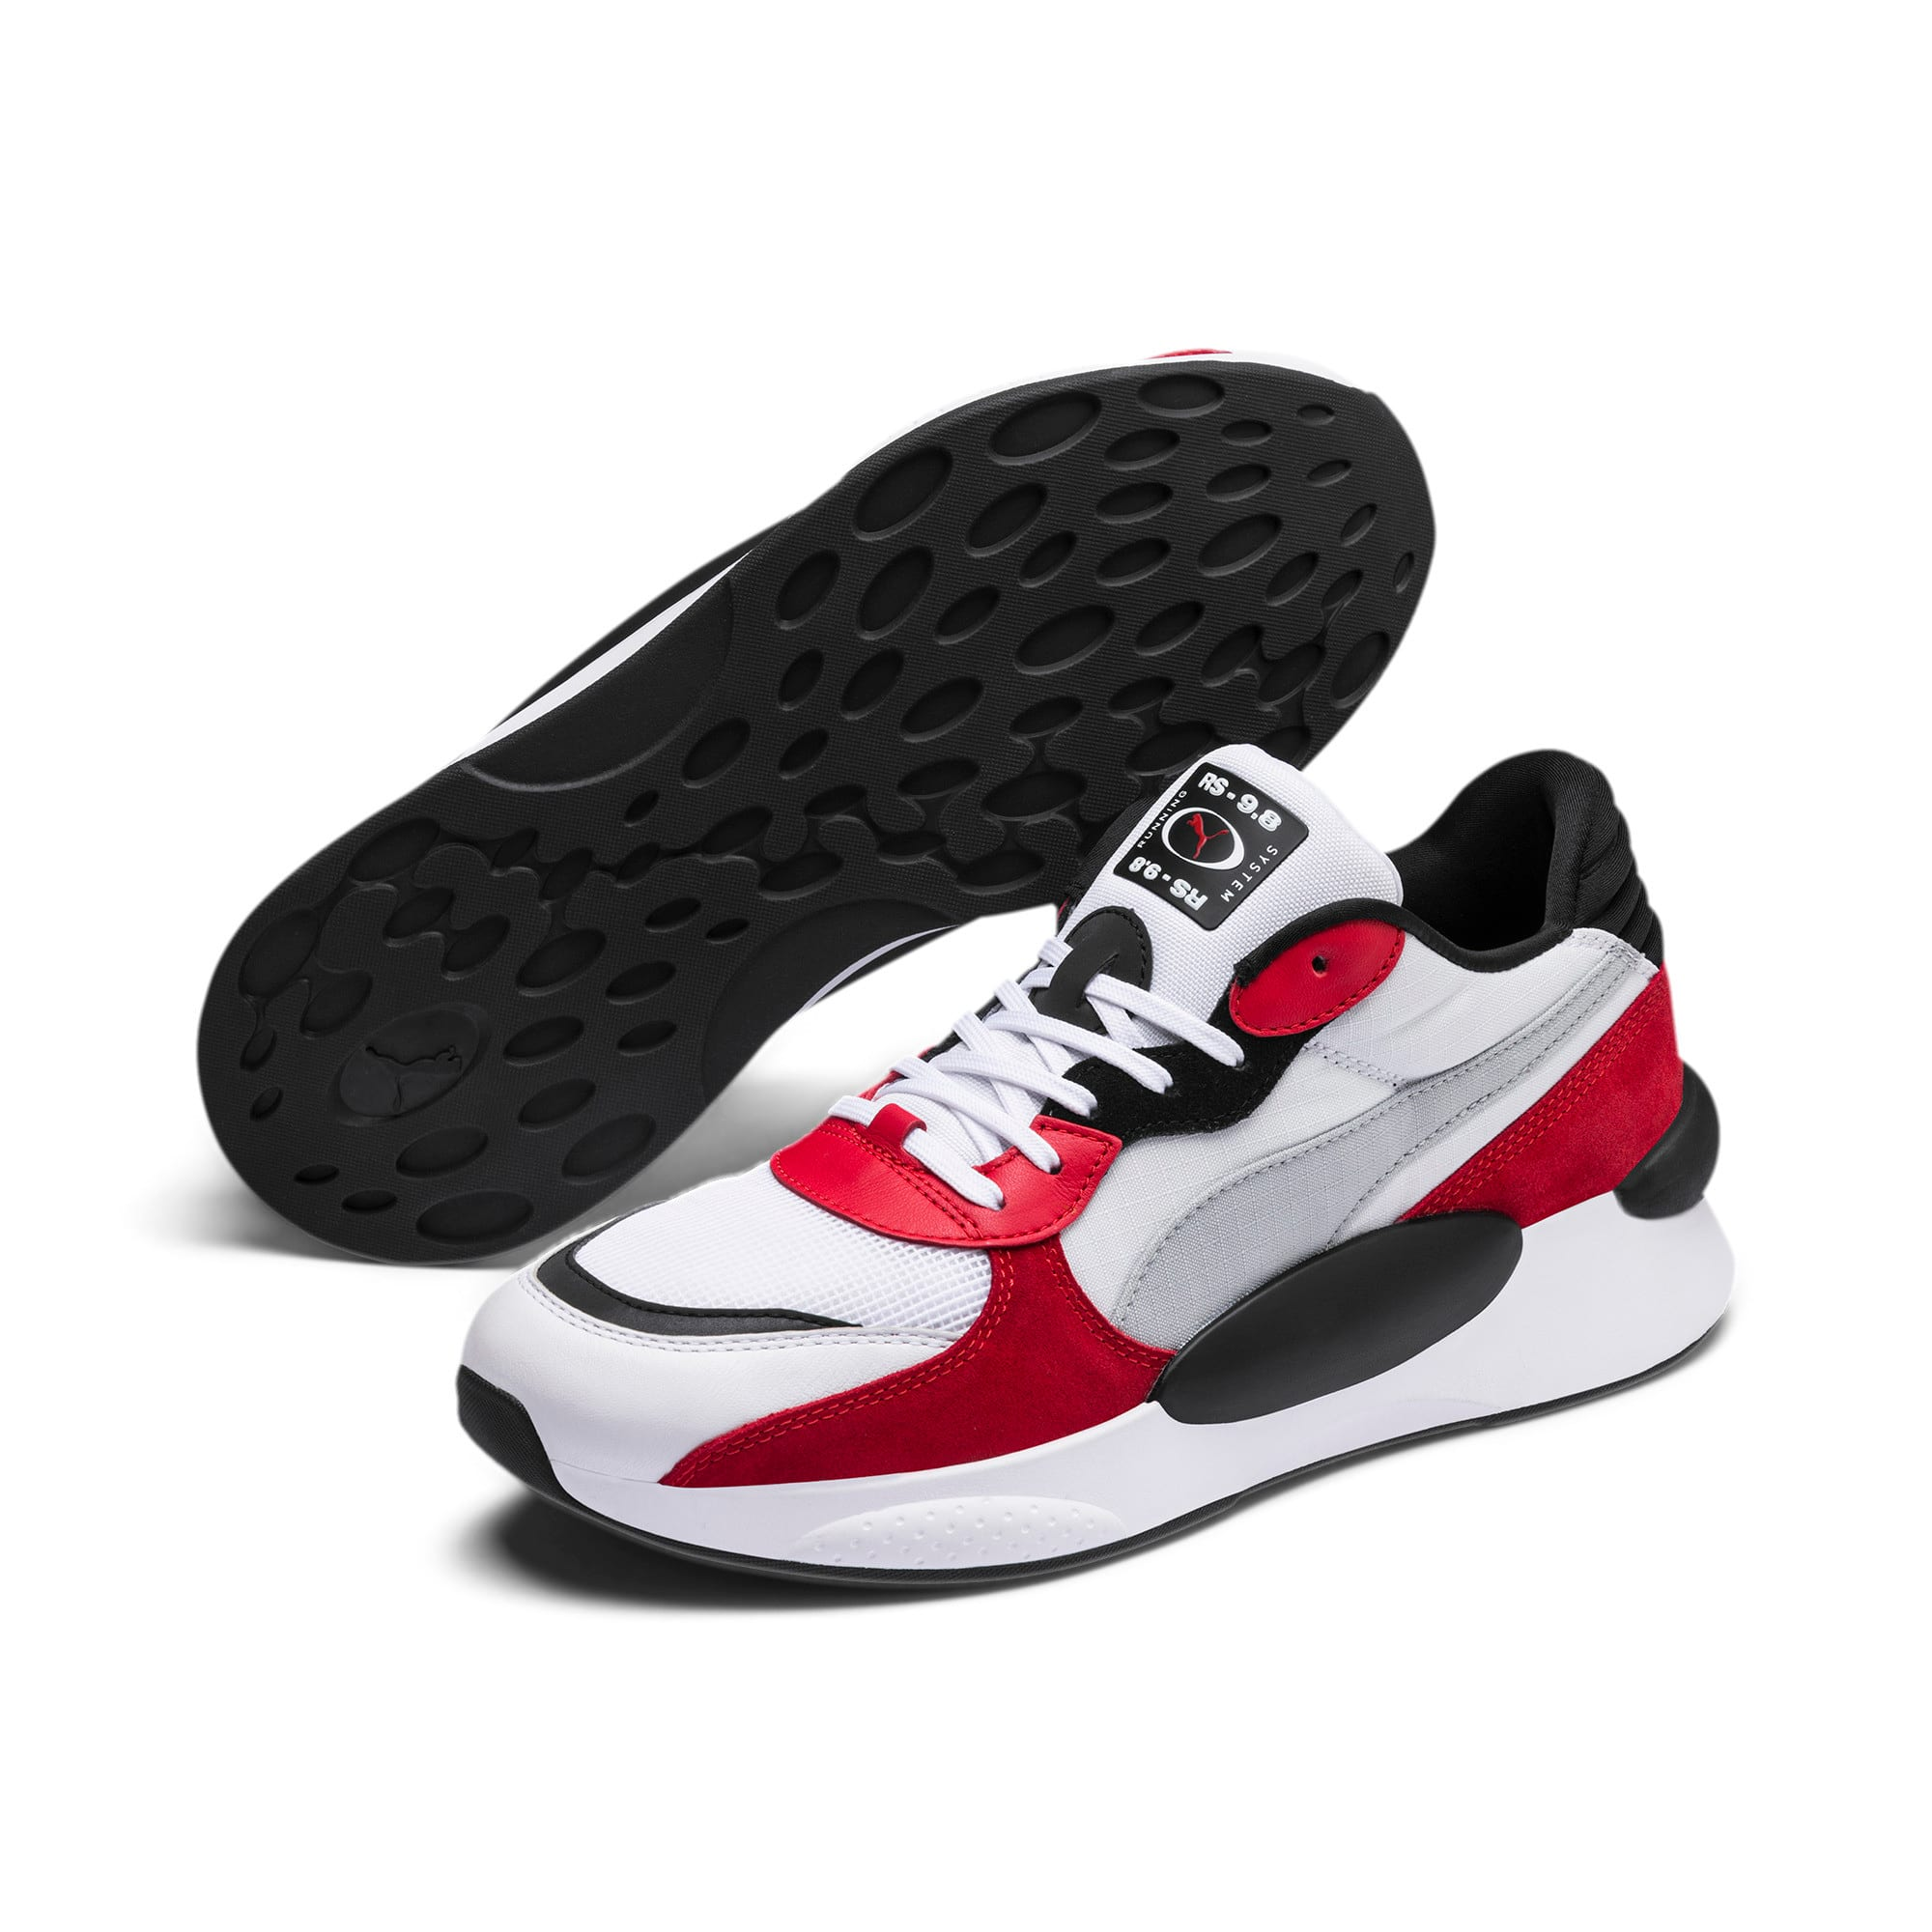 Thumbnail 3 of RS 9.8 Space sportschoenen, Puma White-High Risk Red, medium